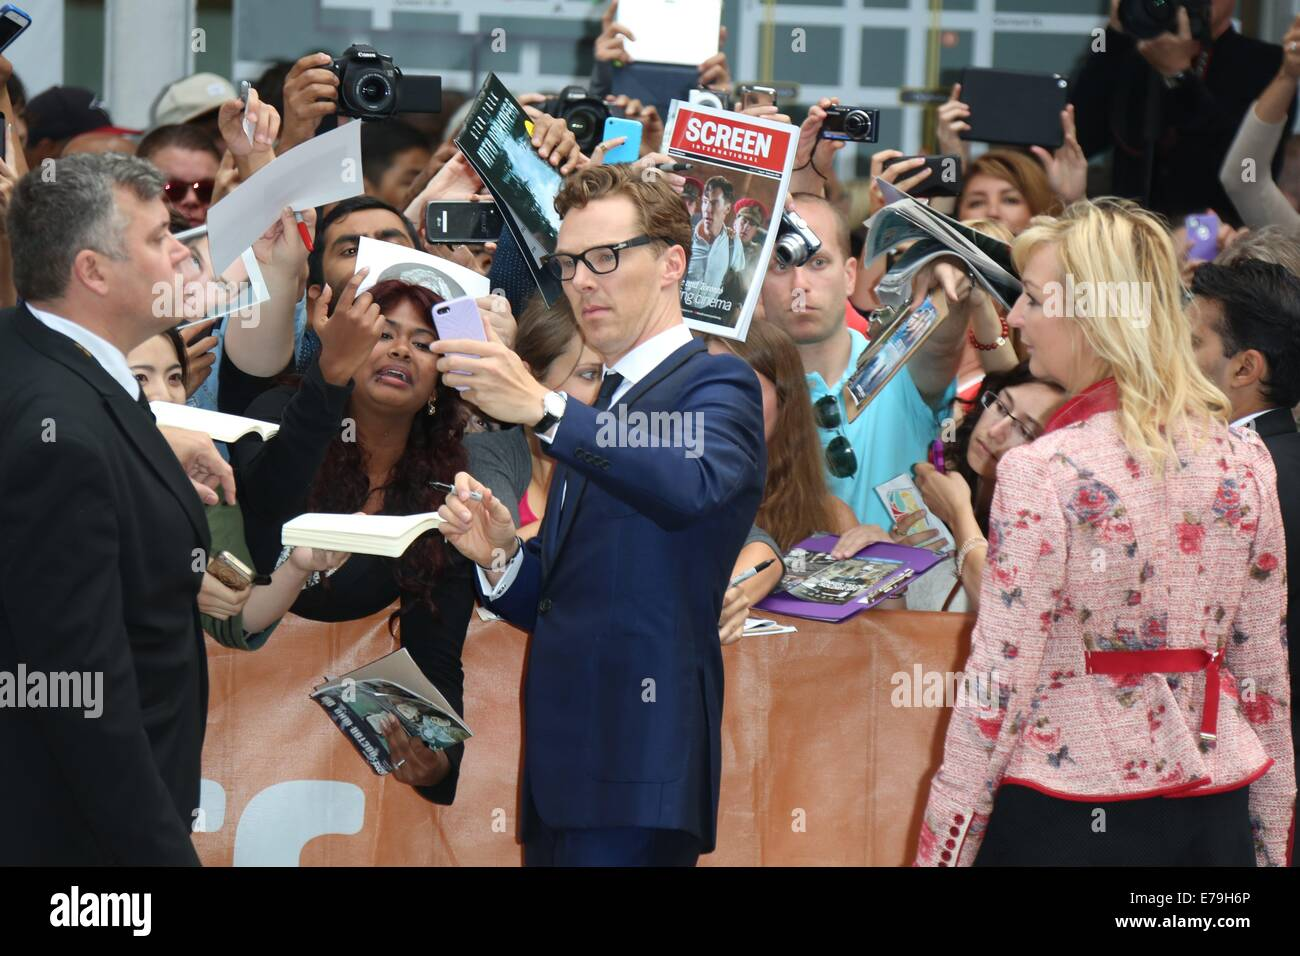 Toronto, Canada. 09th Sep, 2014. Actor Benedict Cumberbatch attends the premiere of 'The Imitation Game' - Stock Image